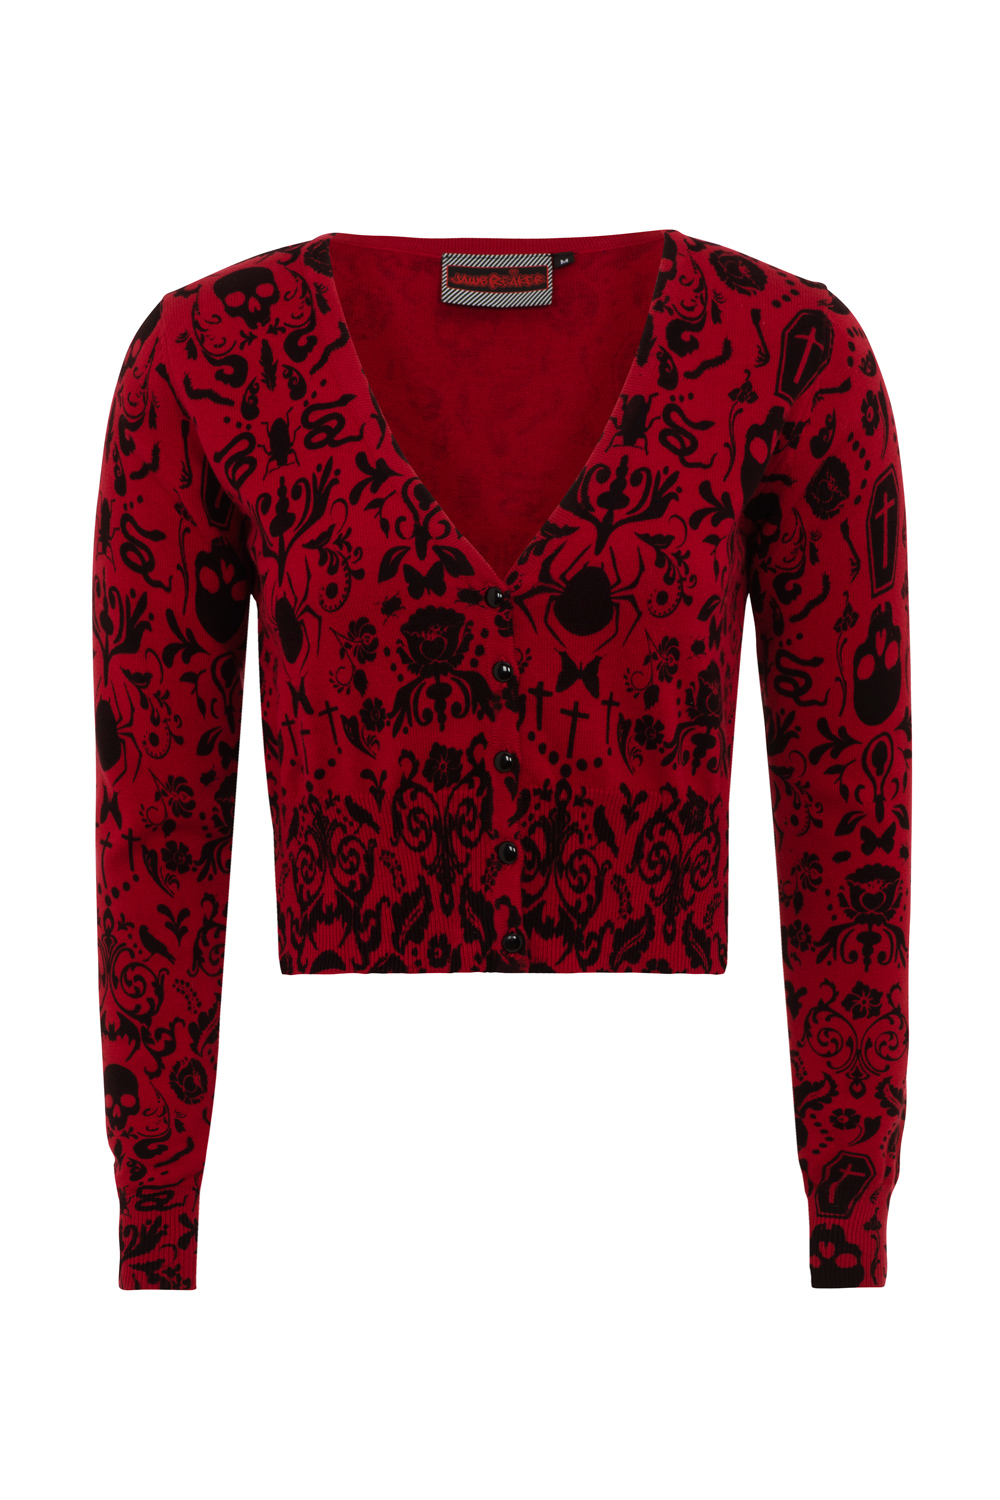 Skull Stamp Red Cropped Cardigan